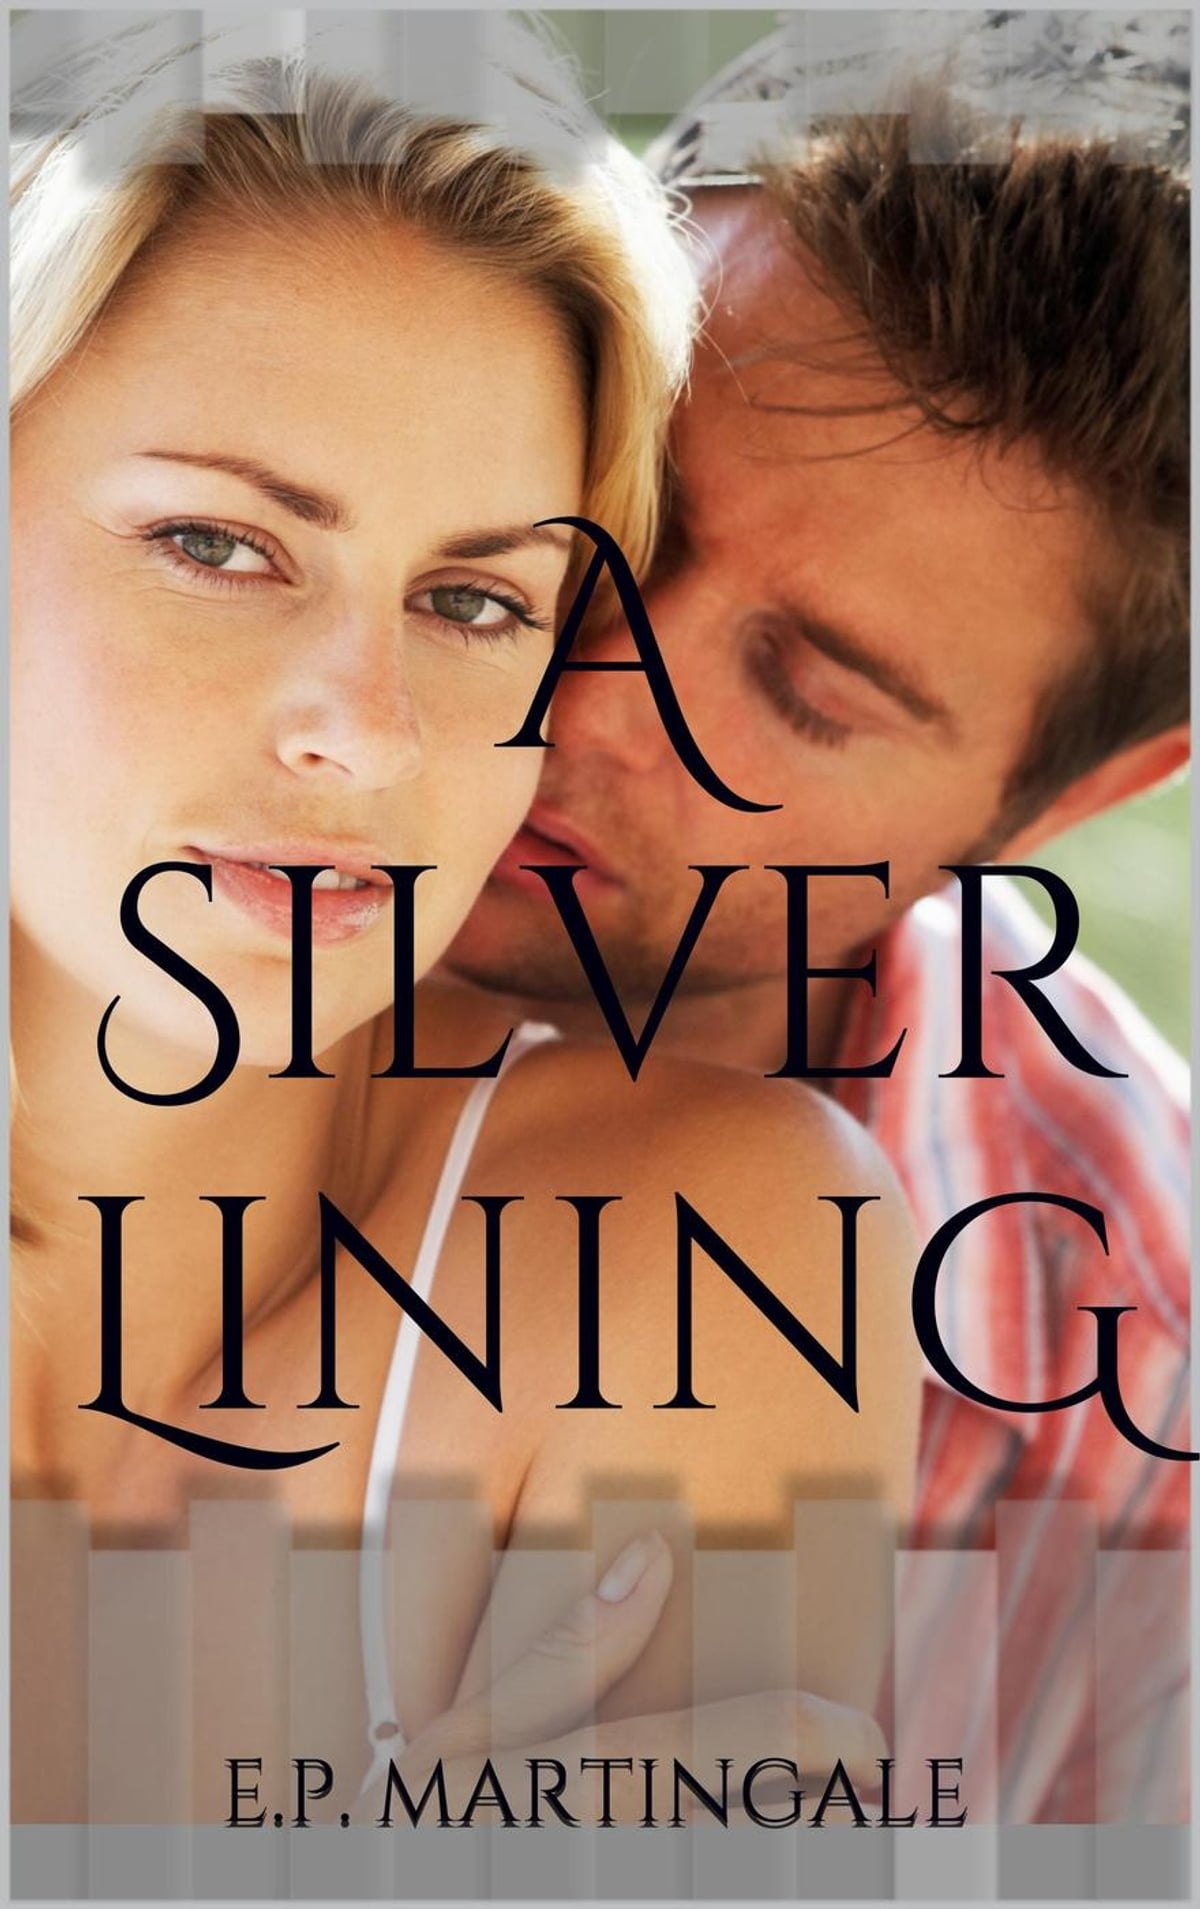 Mujeres Bbw a silver lining: a curvy and confident bbw older woman younger man romance drama ebookse.p. martingale - rakuten kobo